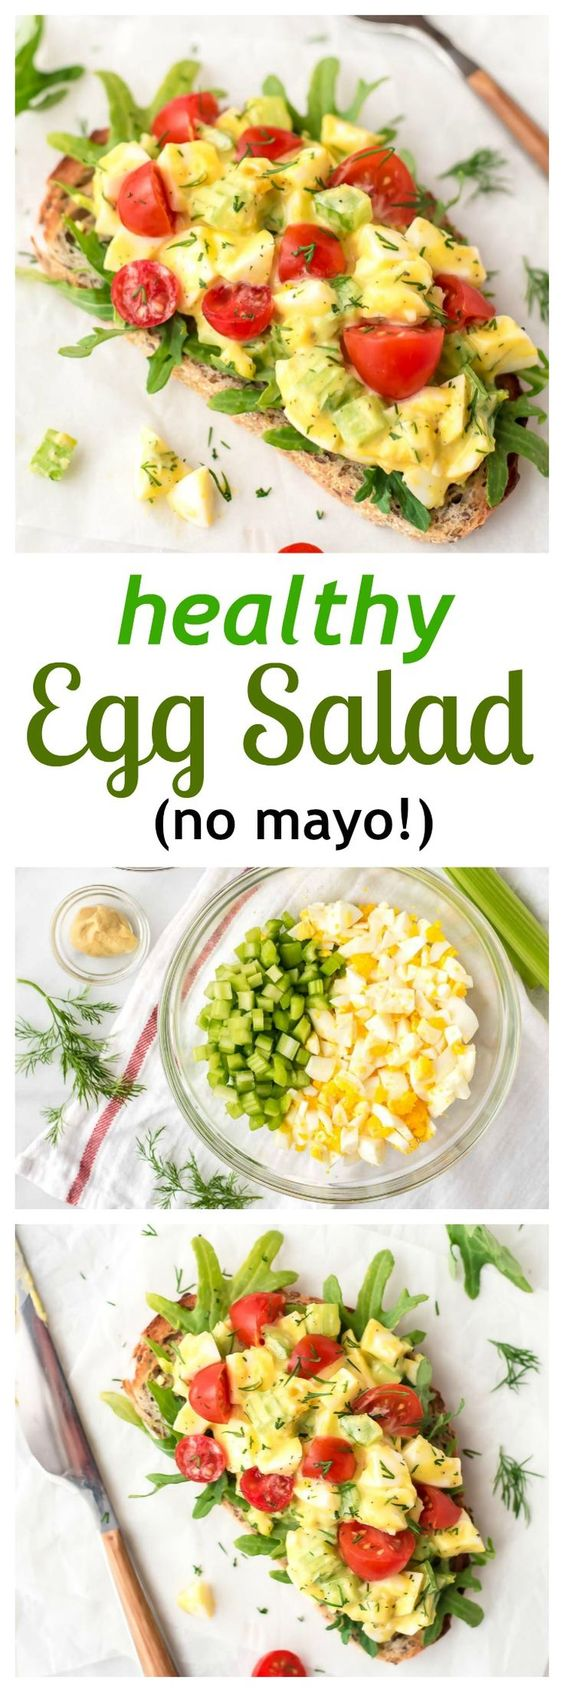 Healthy Egg Salad | Recipe | Healthy Egg Salad, Egg Salad and Celery